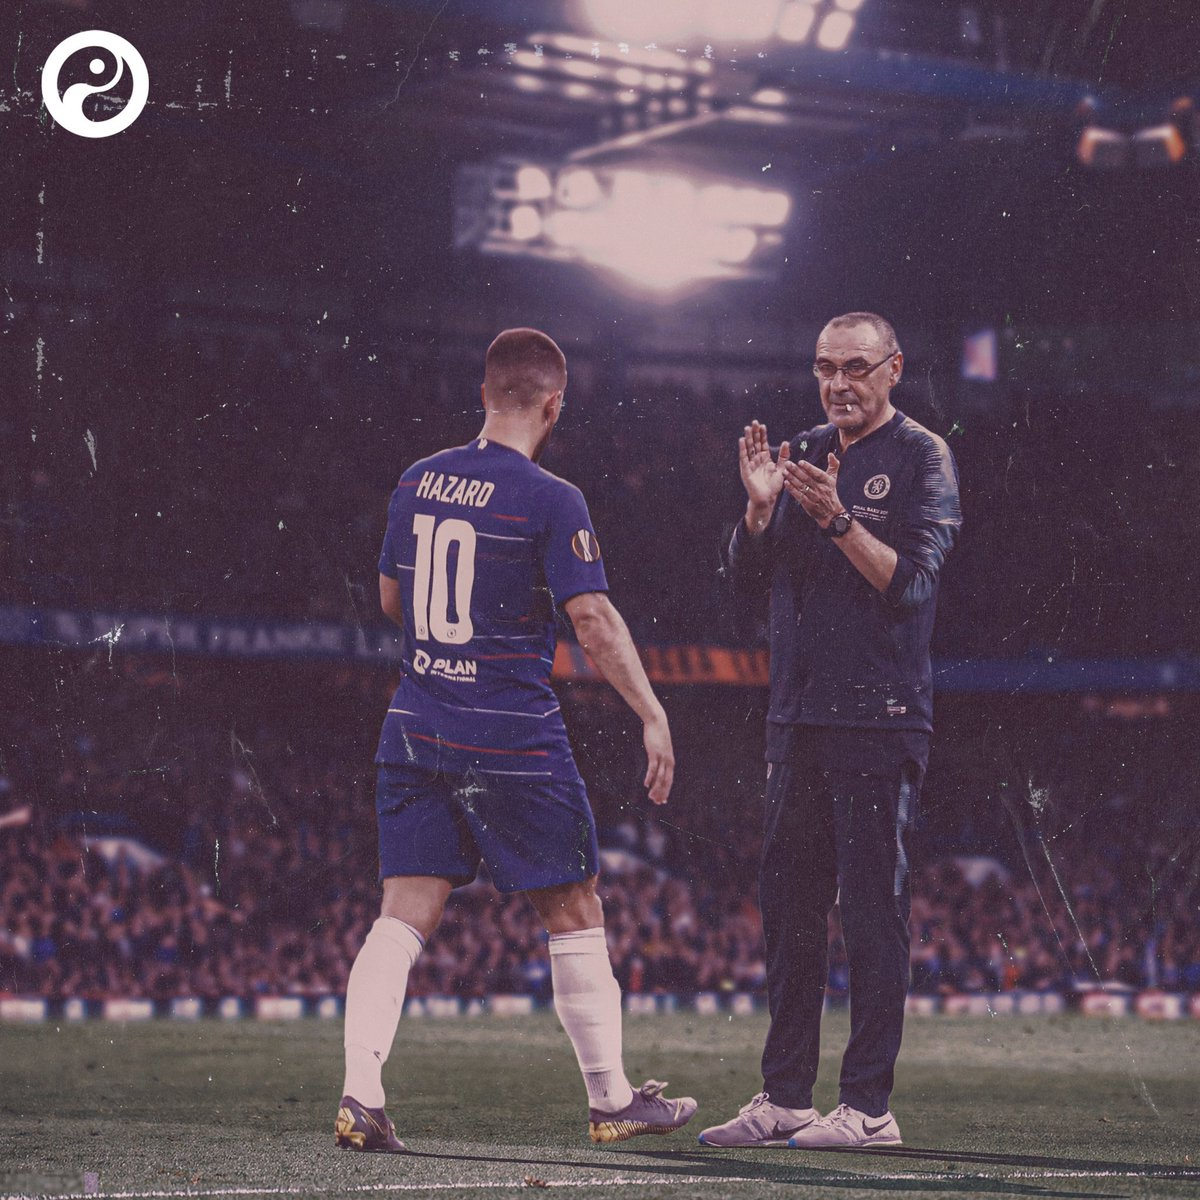 Eden Hazard in the league and Champions League this season: •11 games • 1 goal • 2 assists  Christian Pulisic in the league and Champions League this season: • 11 games • 5 goals • 3 assists  Chelsea are doing just fine. 😉